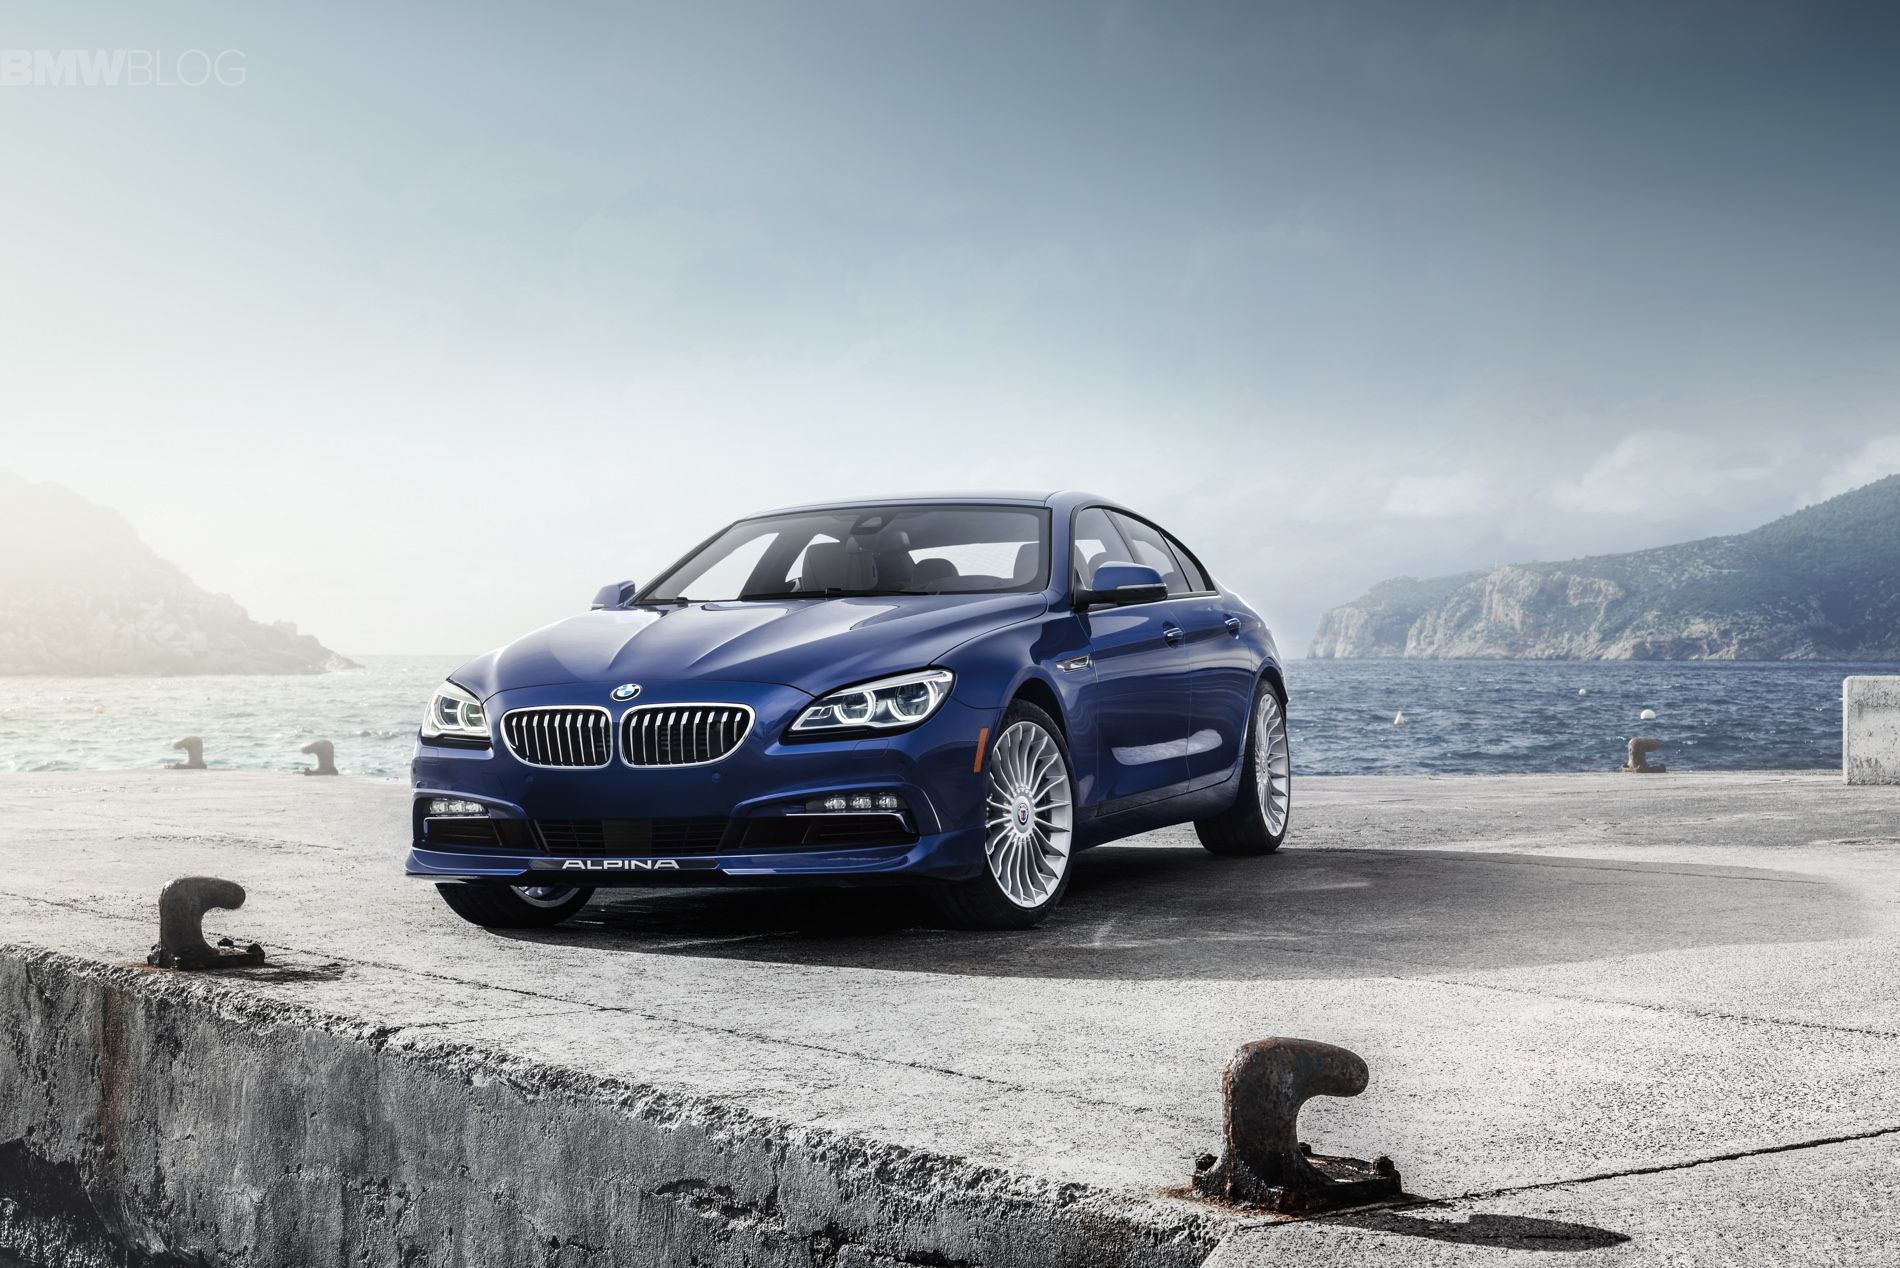 2016 BMW ALPINA B6 xDrive Gran Coupe delivers more power and